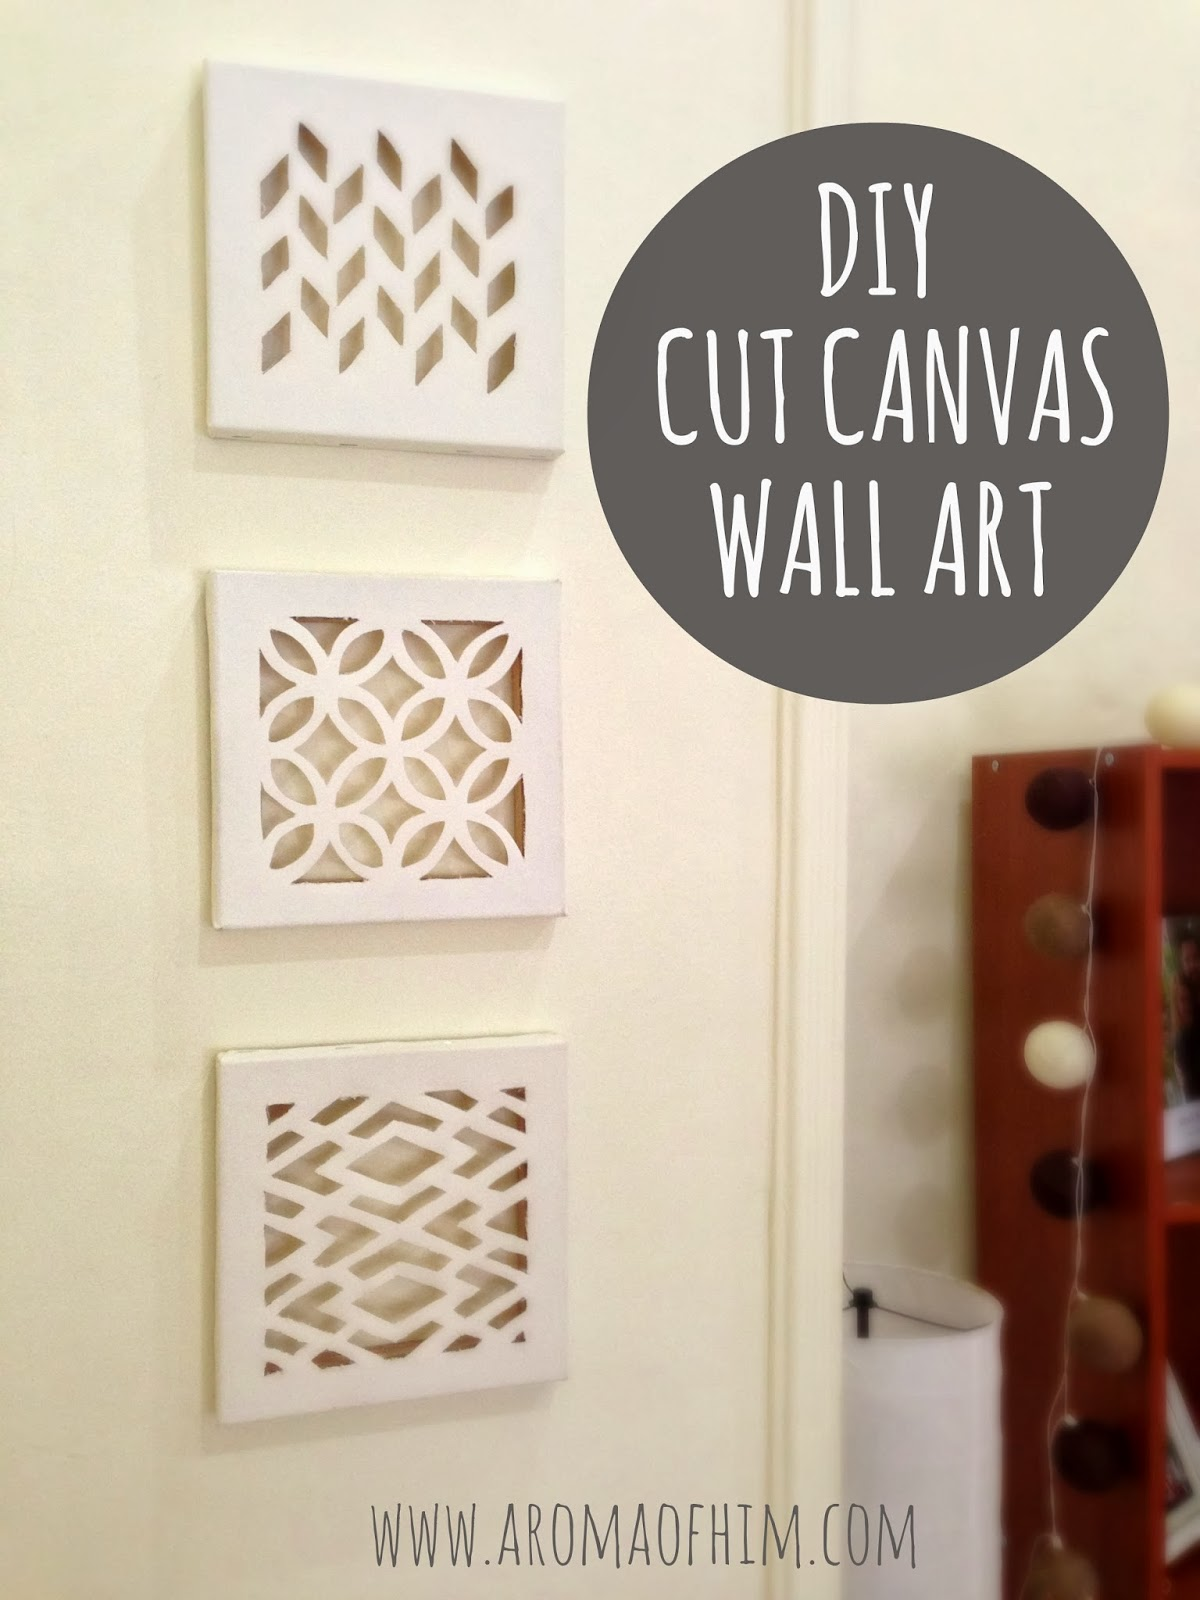 76 brilliant diy wall art ideas for your blank walls diy wall art ideas and do it yourself wall decor for living room bedroom solutioingenieria Images